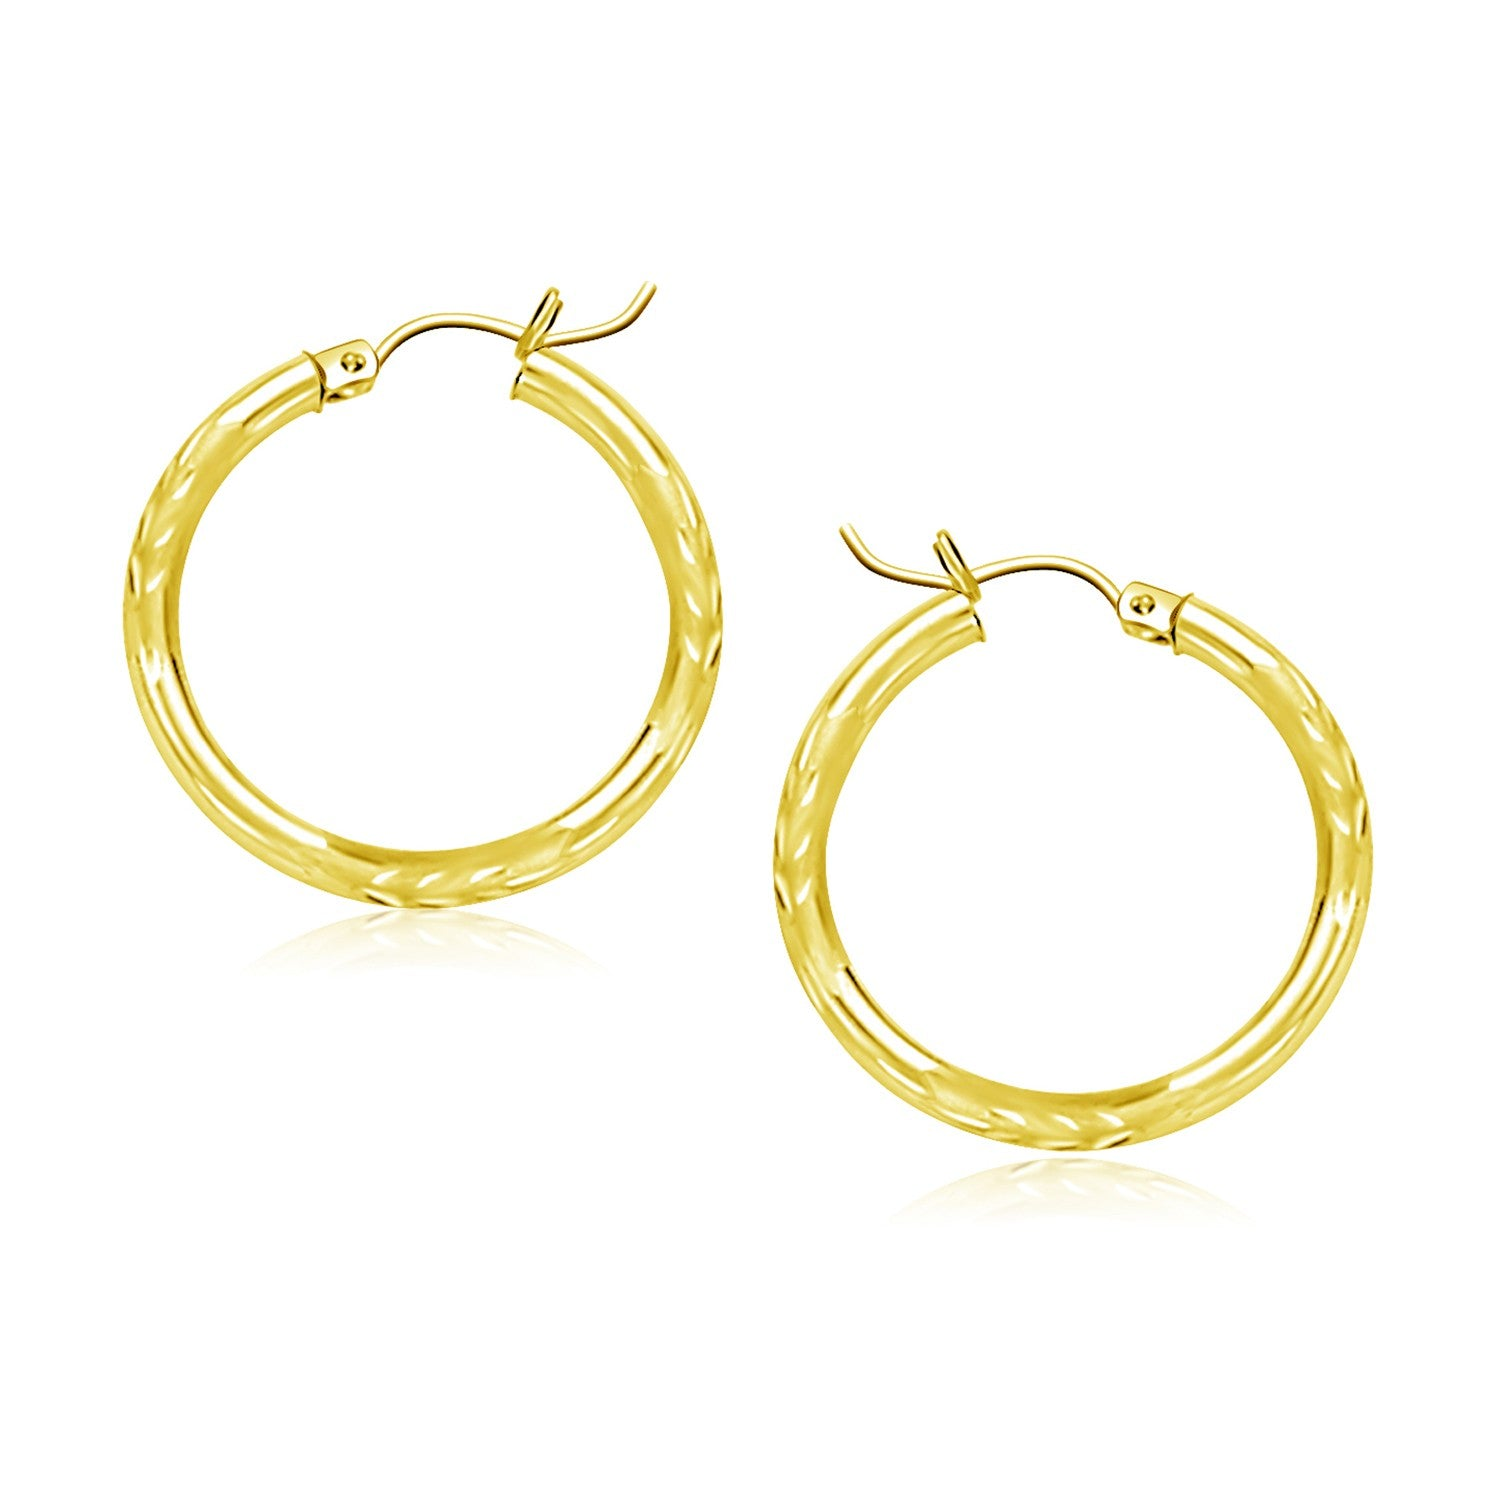 14K Yellow Gold Diamond Cut Hoop Earrings (20mm)